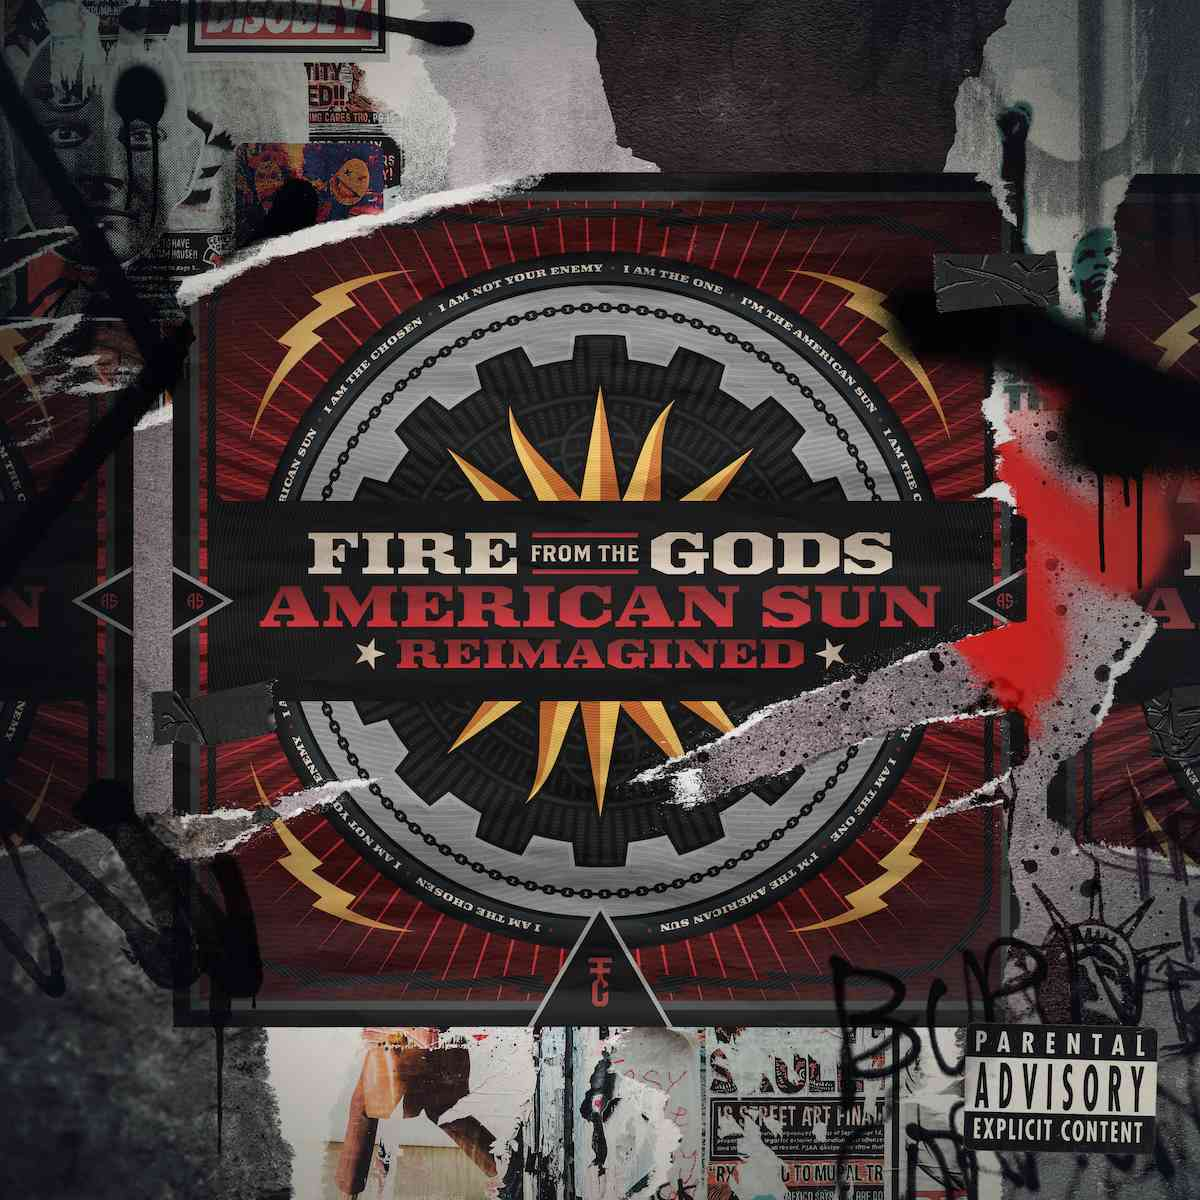 fire from the gods - American-Sun - Reimagined - album cover